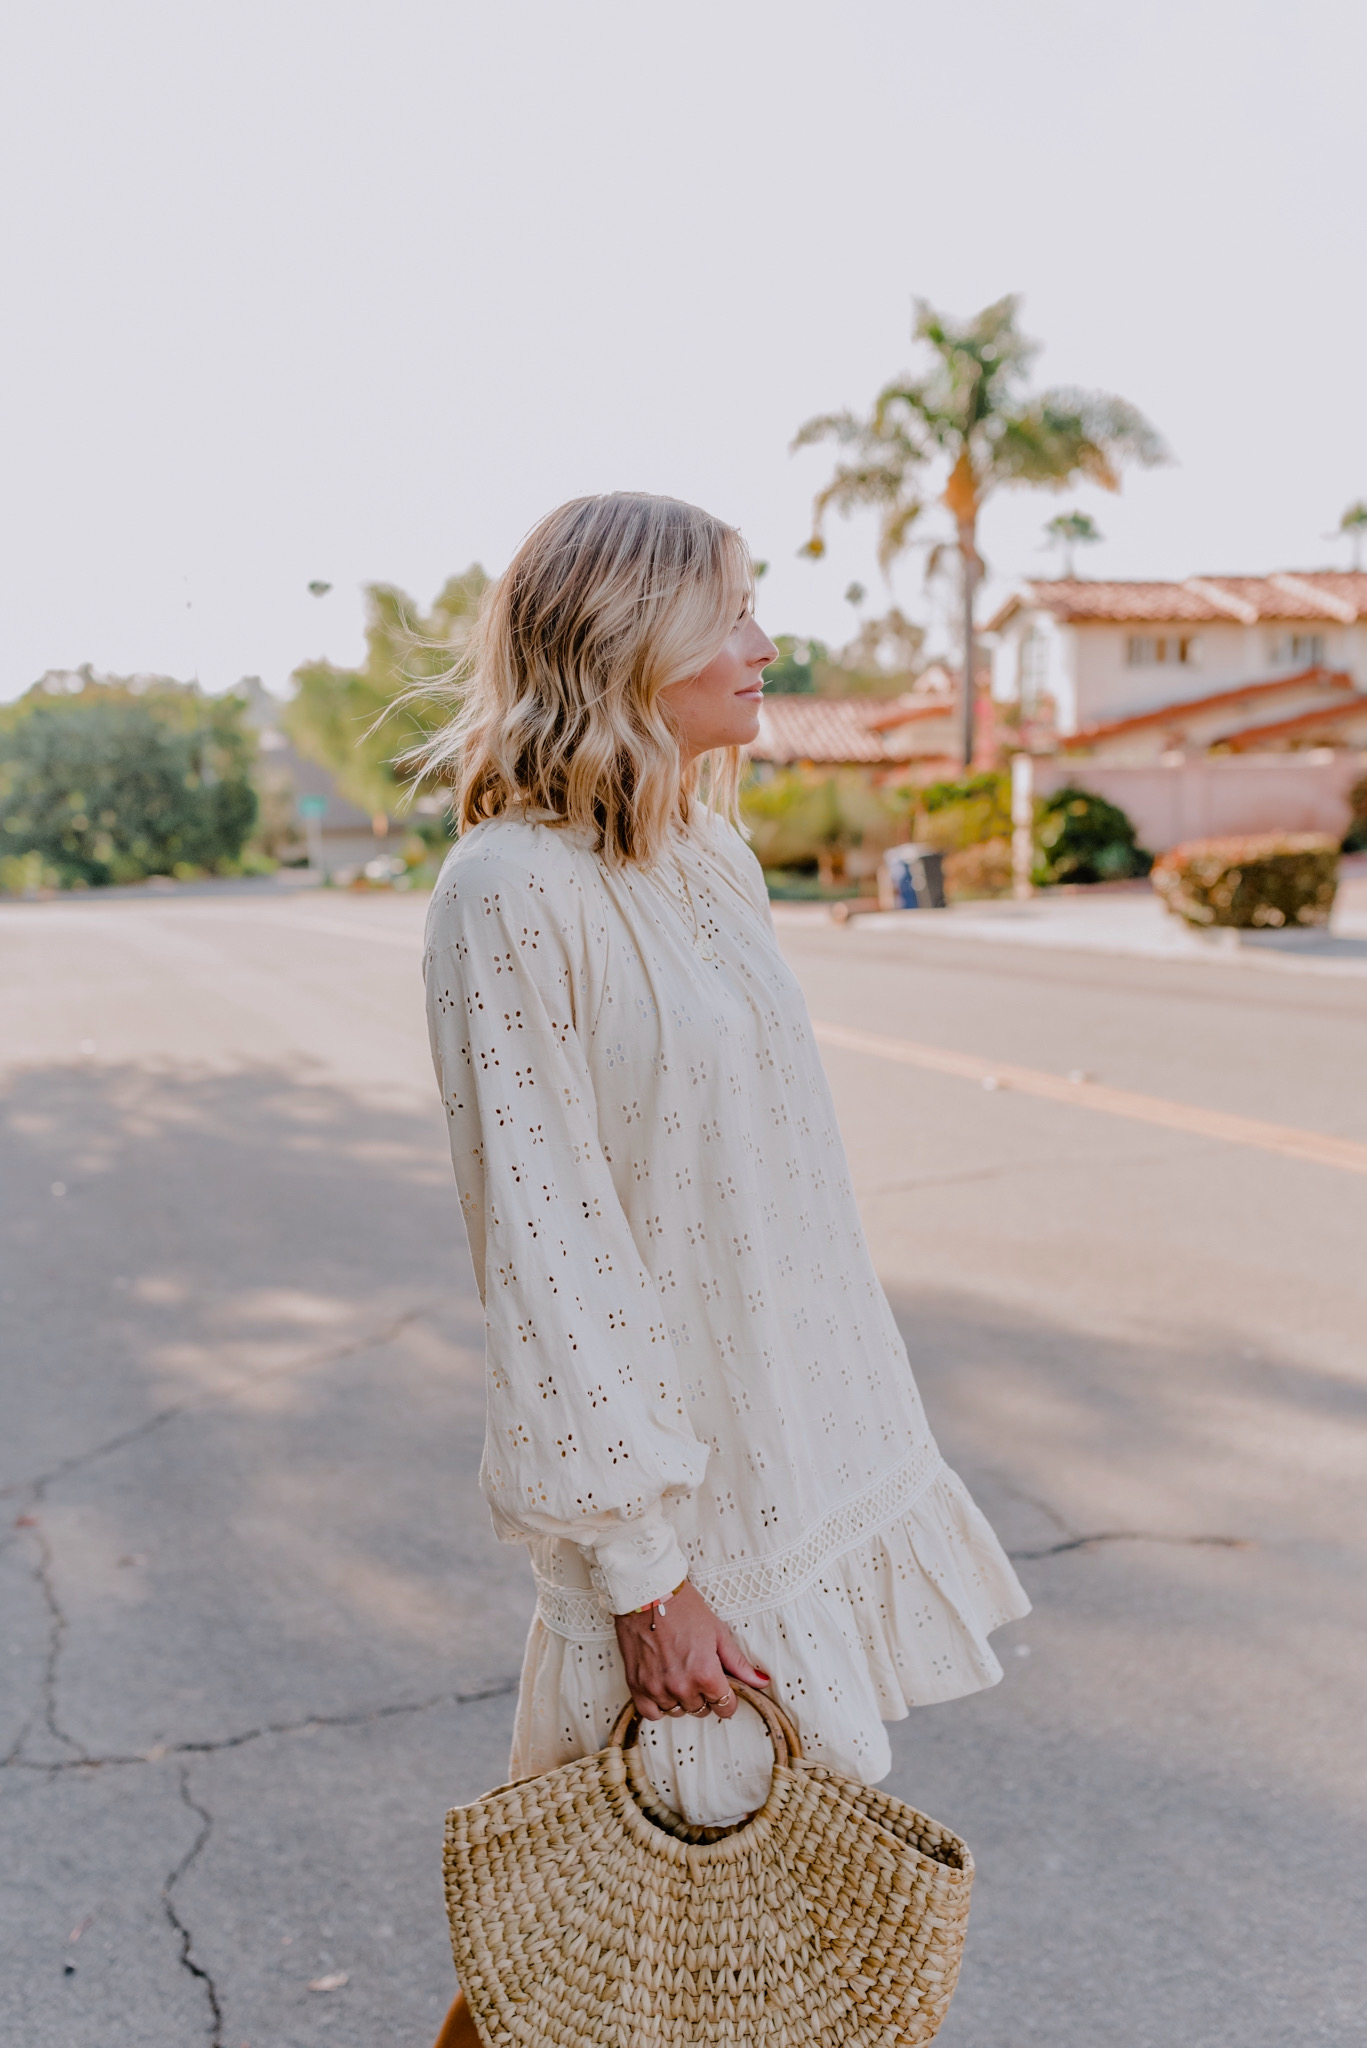 Summer Whites by popular San Diego fashion blog, Navy Grace: image of a woman walking outside on a street and wearing a ASOS  broderie long sleeve mini smock dress in cream, Sezane High Thomas Sandals, Gorjana Astrology Coin Necklace, and holding a Rhodes Mini Straw Tote Bag.